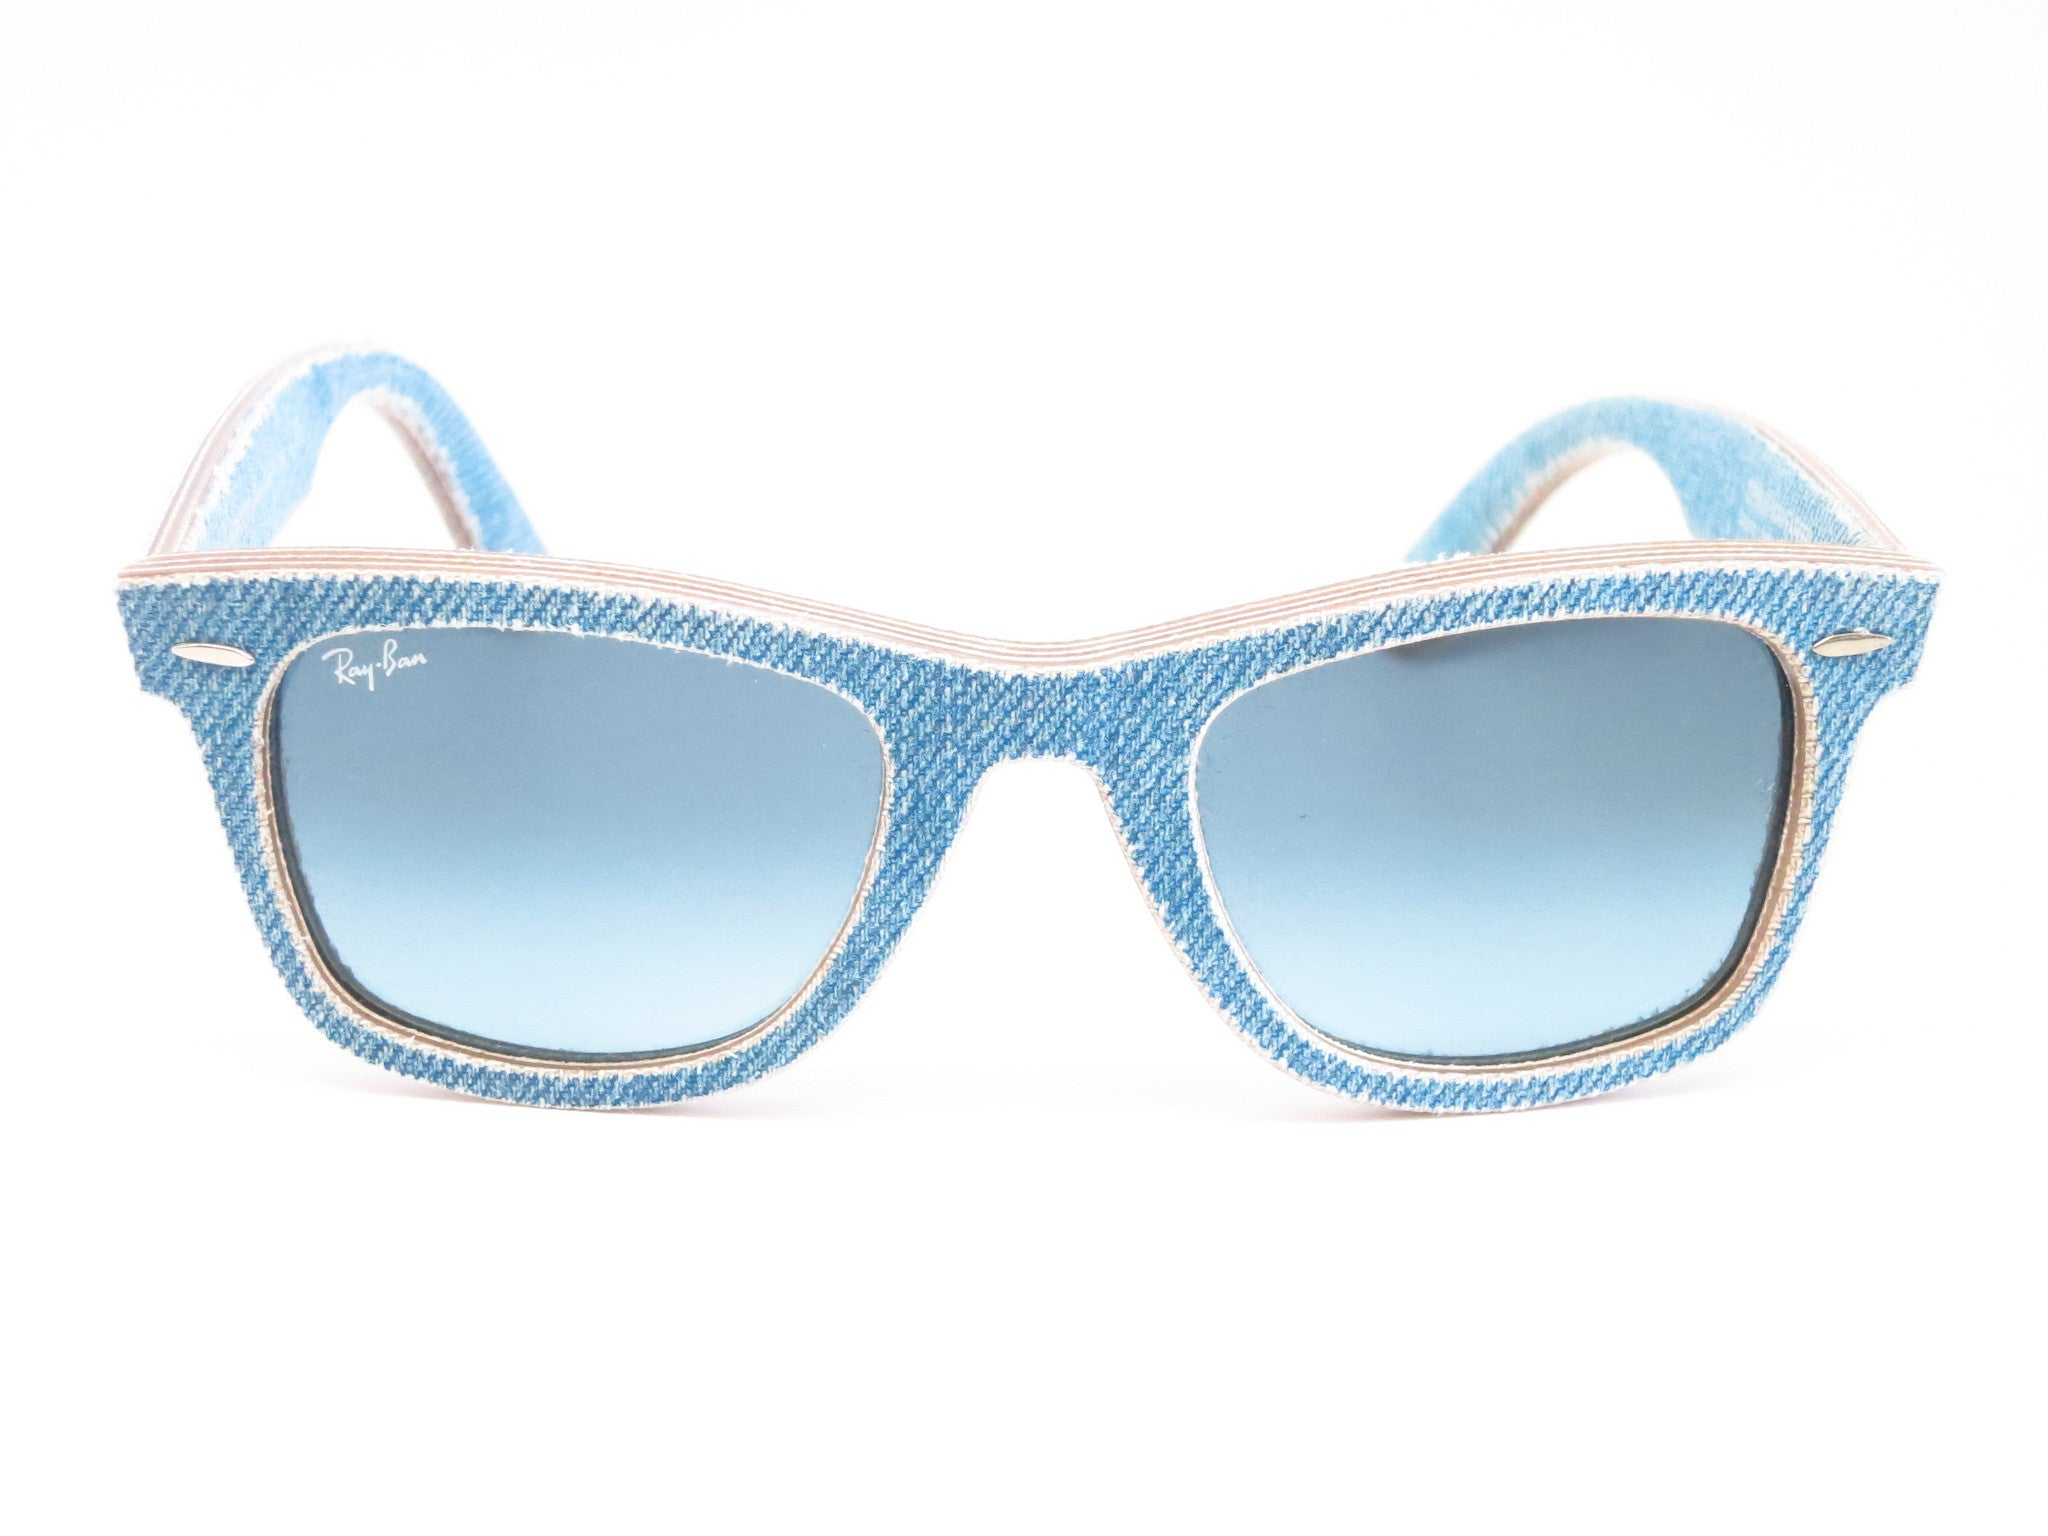 29655f6f05 ... Ray-Ban RB 2140 Original Wayfarer 1164 4M Jeans Azure Sunglasses - Eye  Heart ...